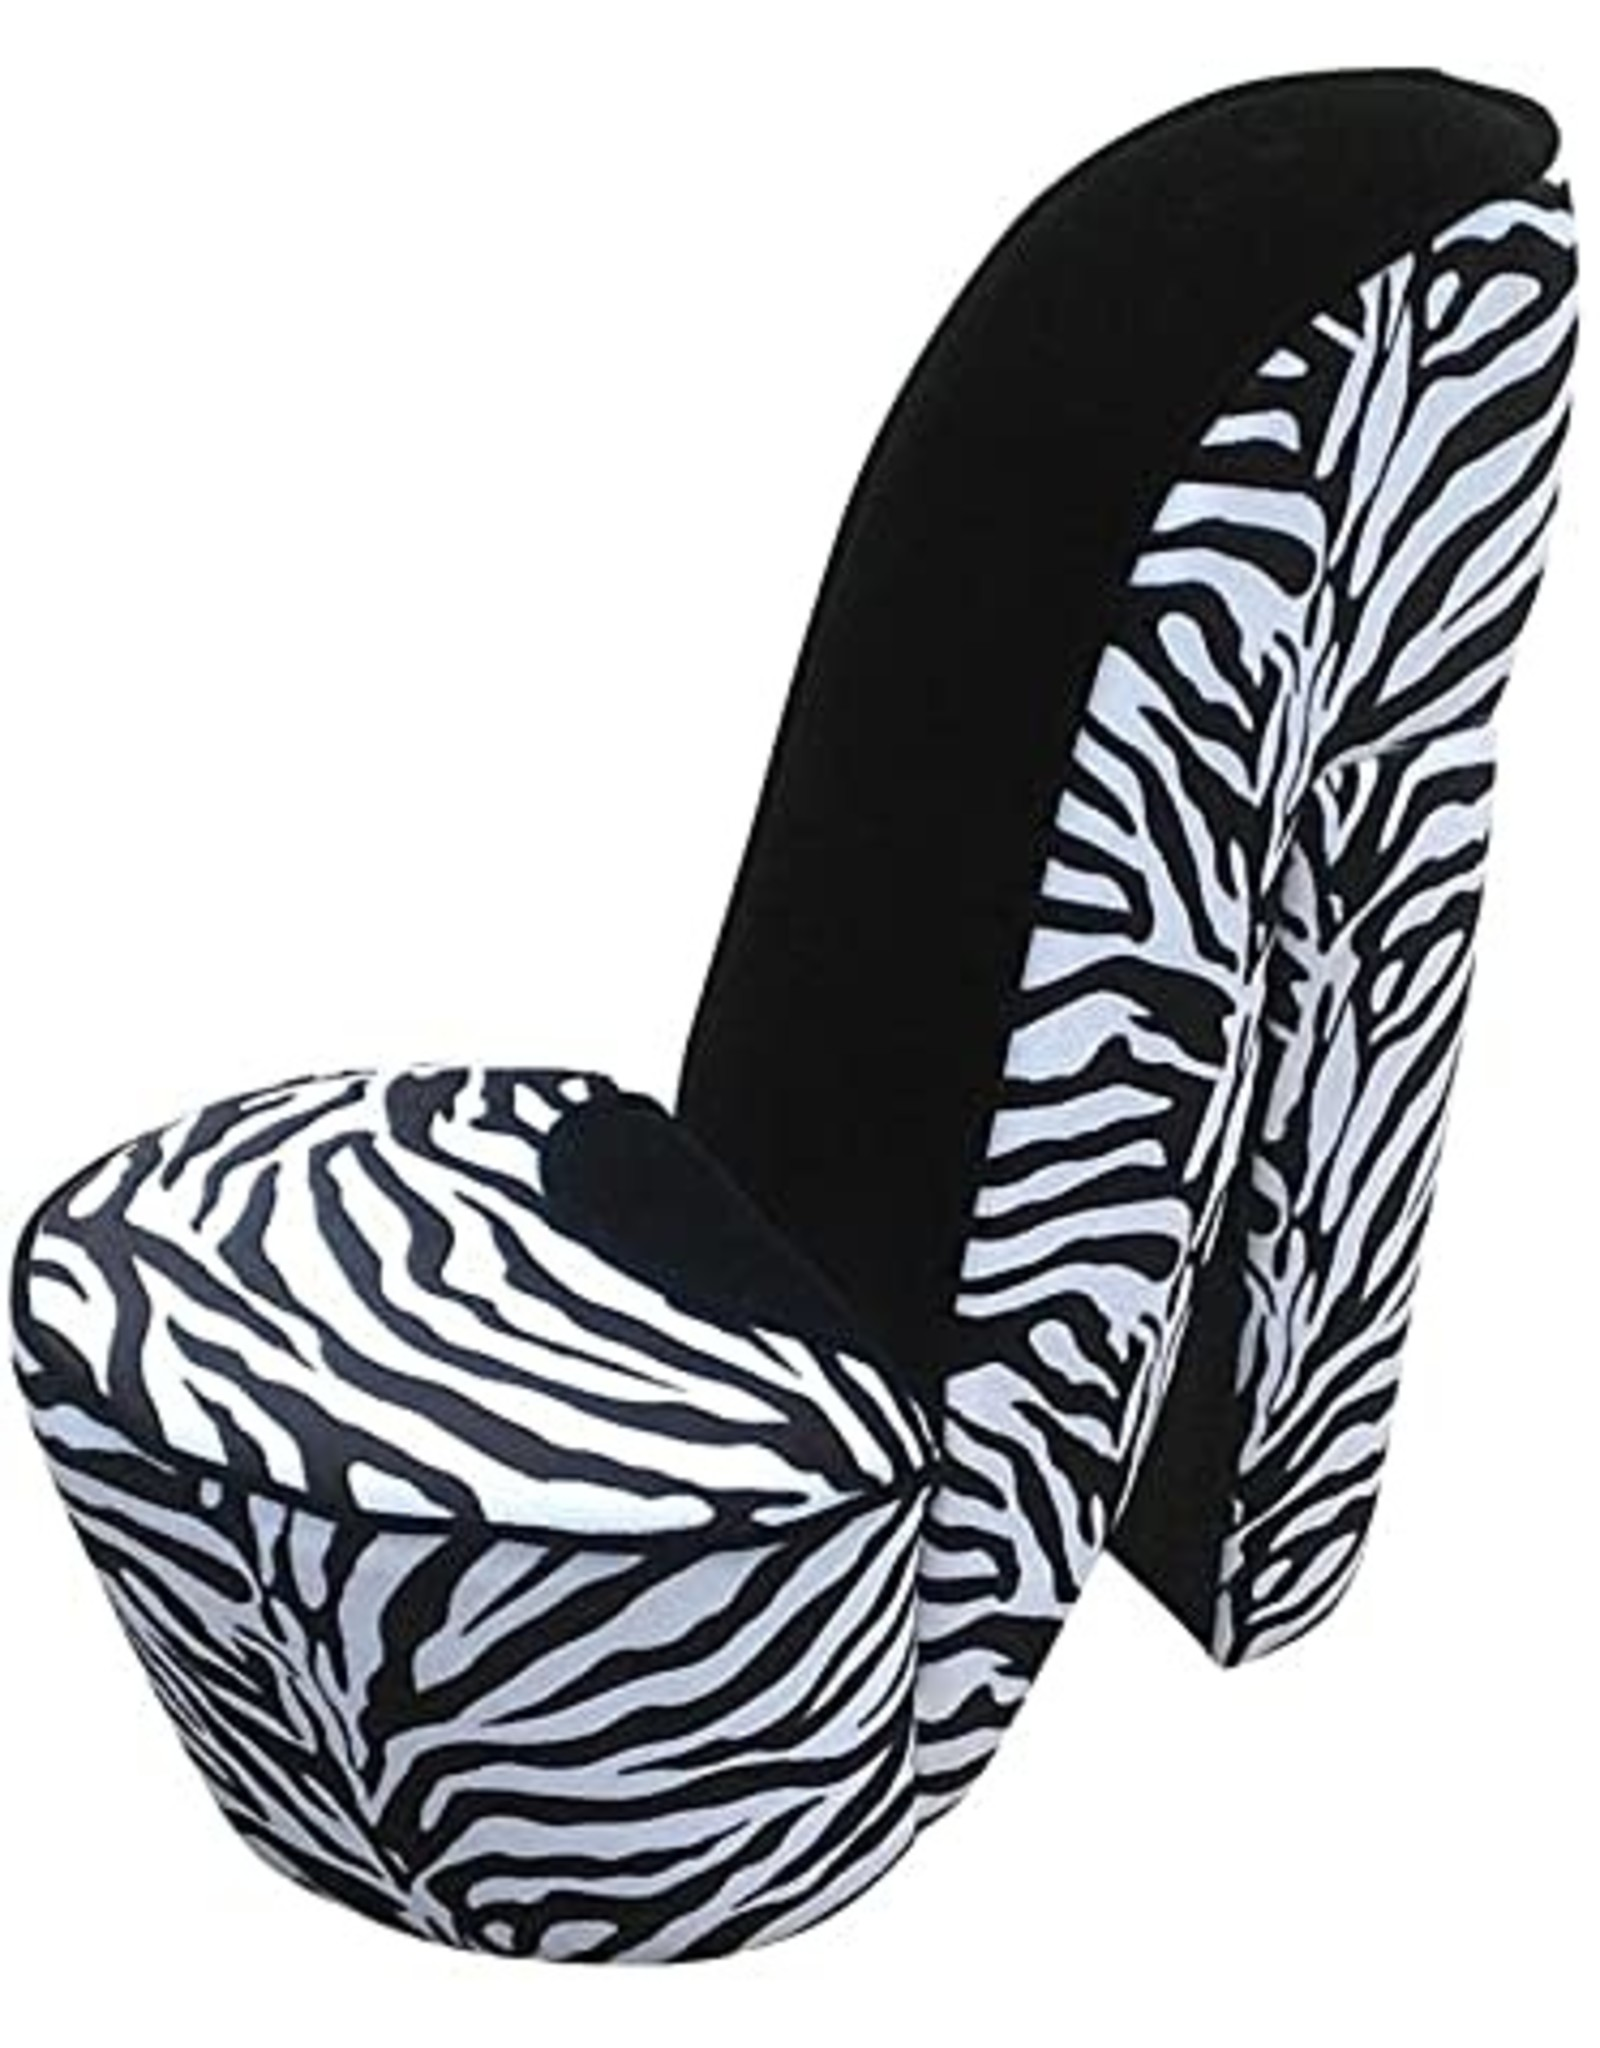 ORIGINAL SHOE CHAIR - ZEBRA